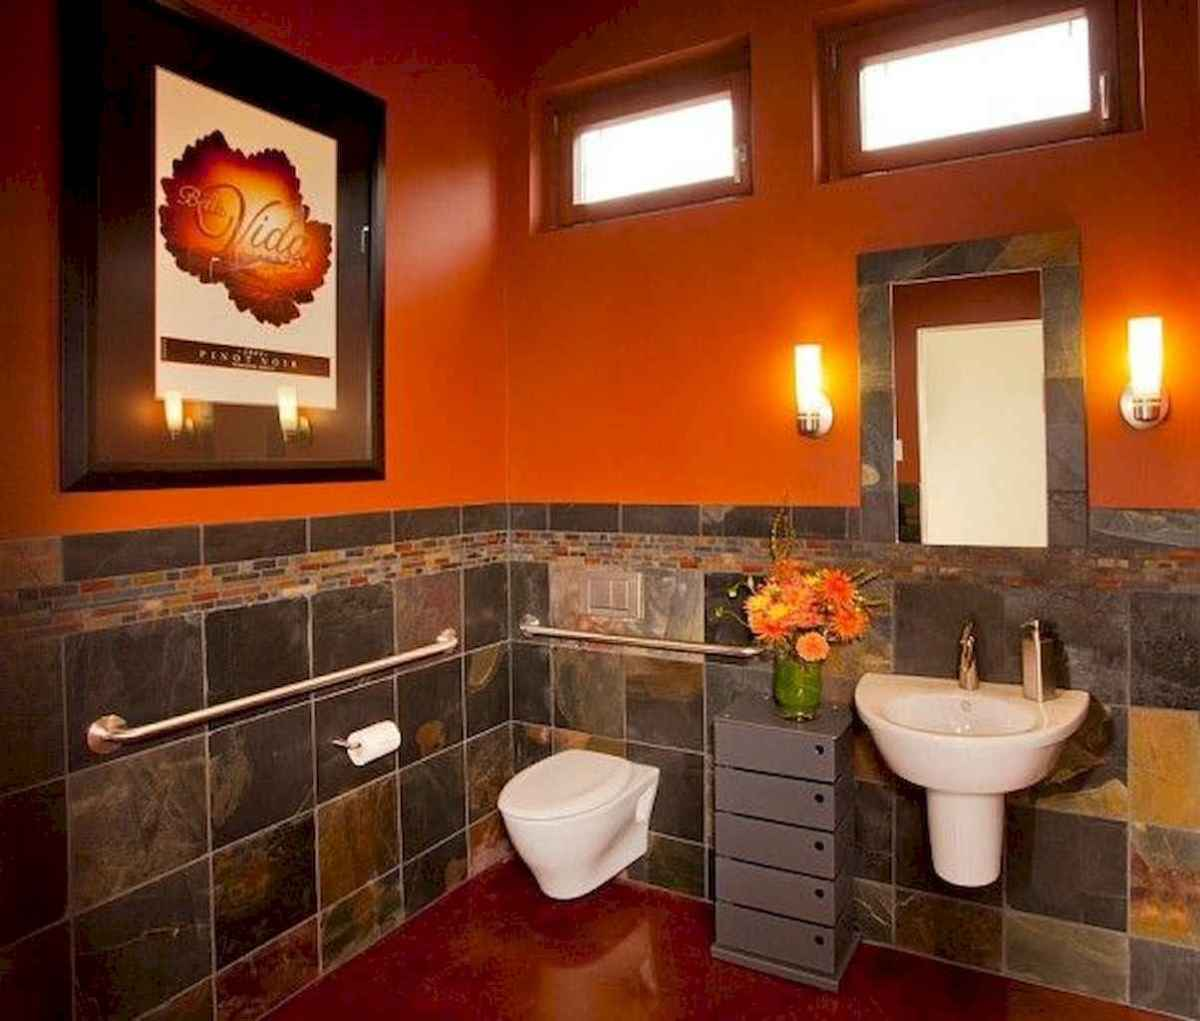 55 colorful and relax bathroom remodel ideas (29)